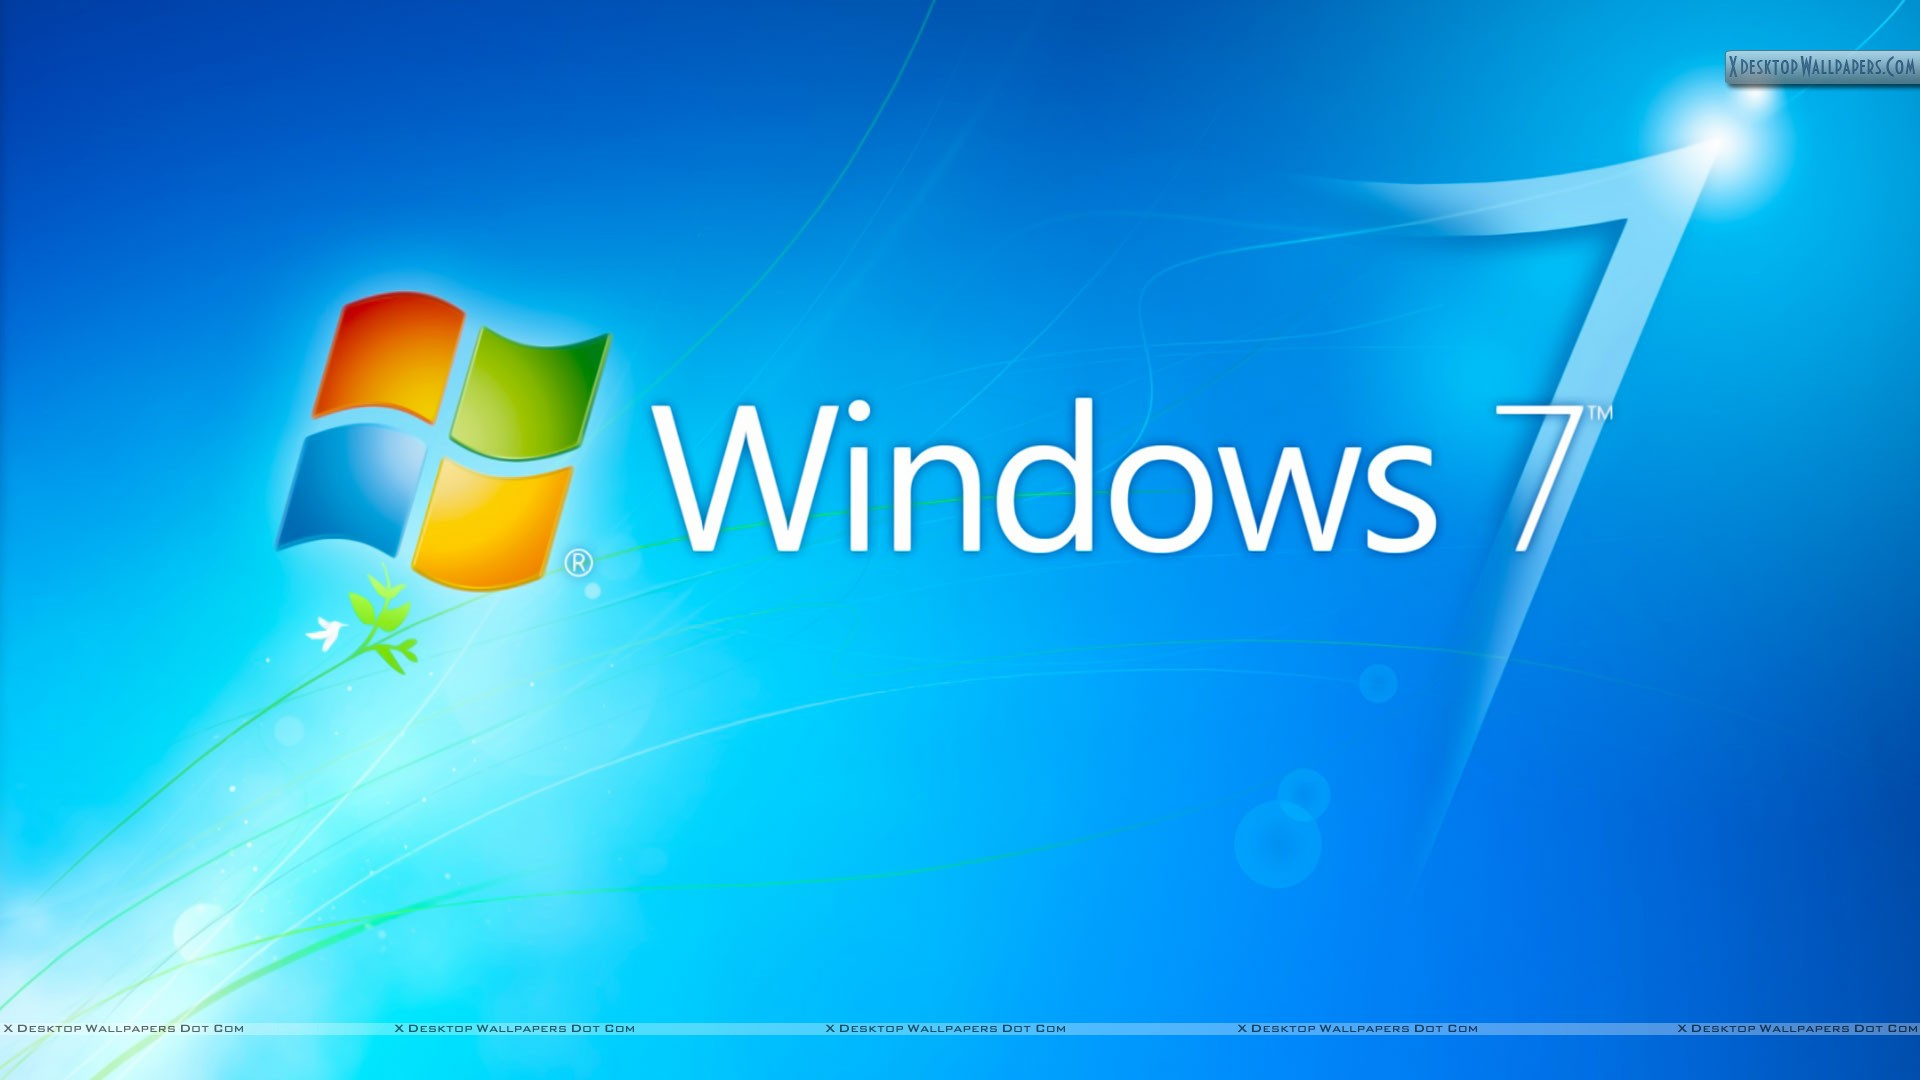 windows 7 wallpapers photos amp images in hd